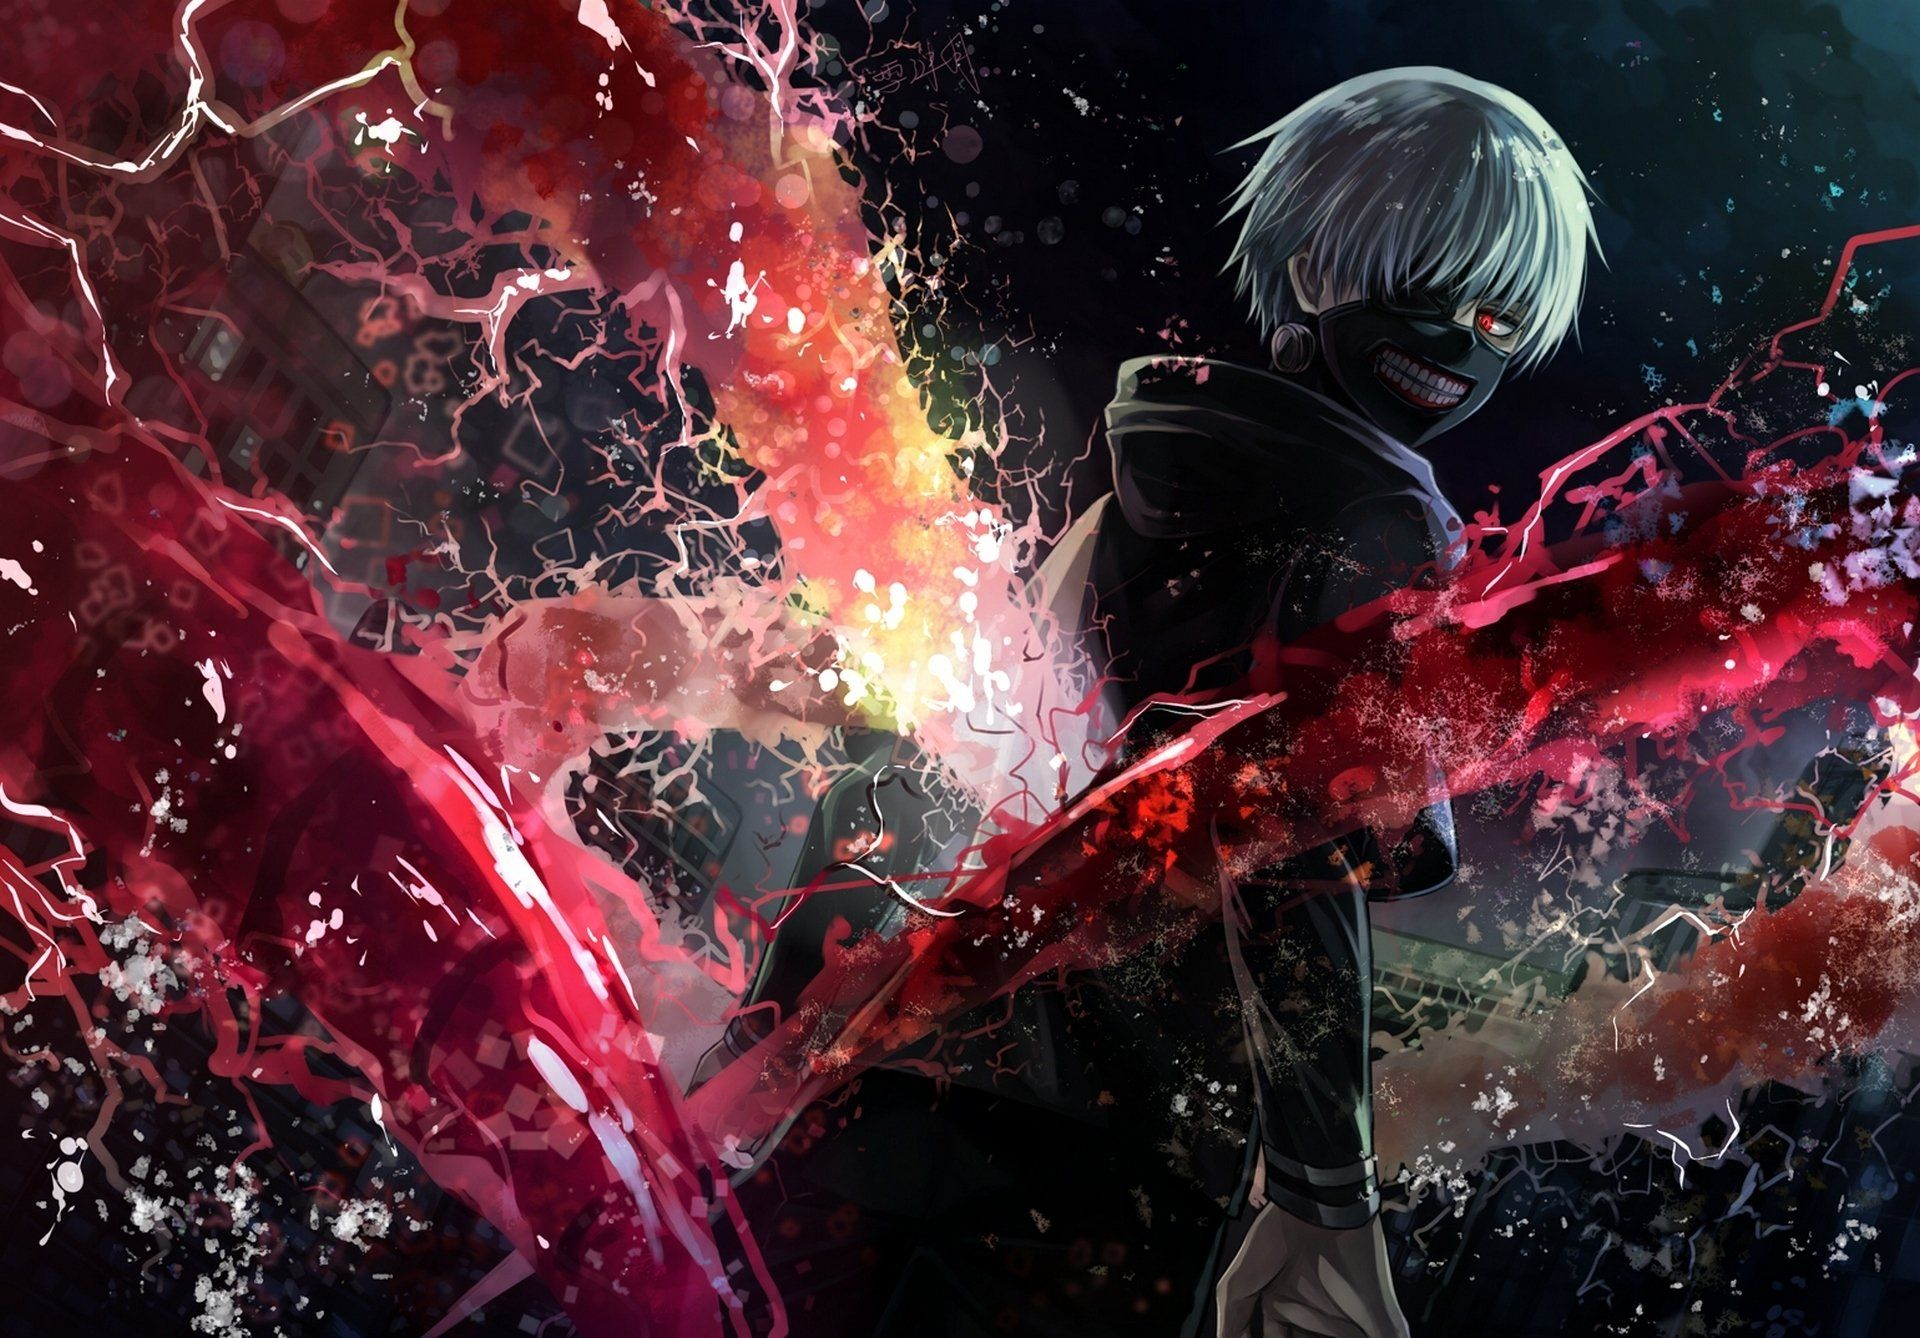 Anime Wallpapers   Top Anime Backgrounds   WallpaperAccess 1920x1338